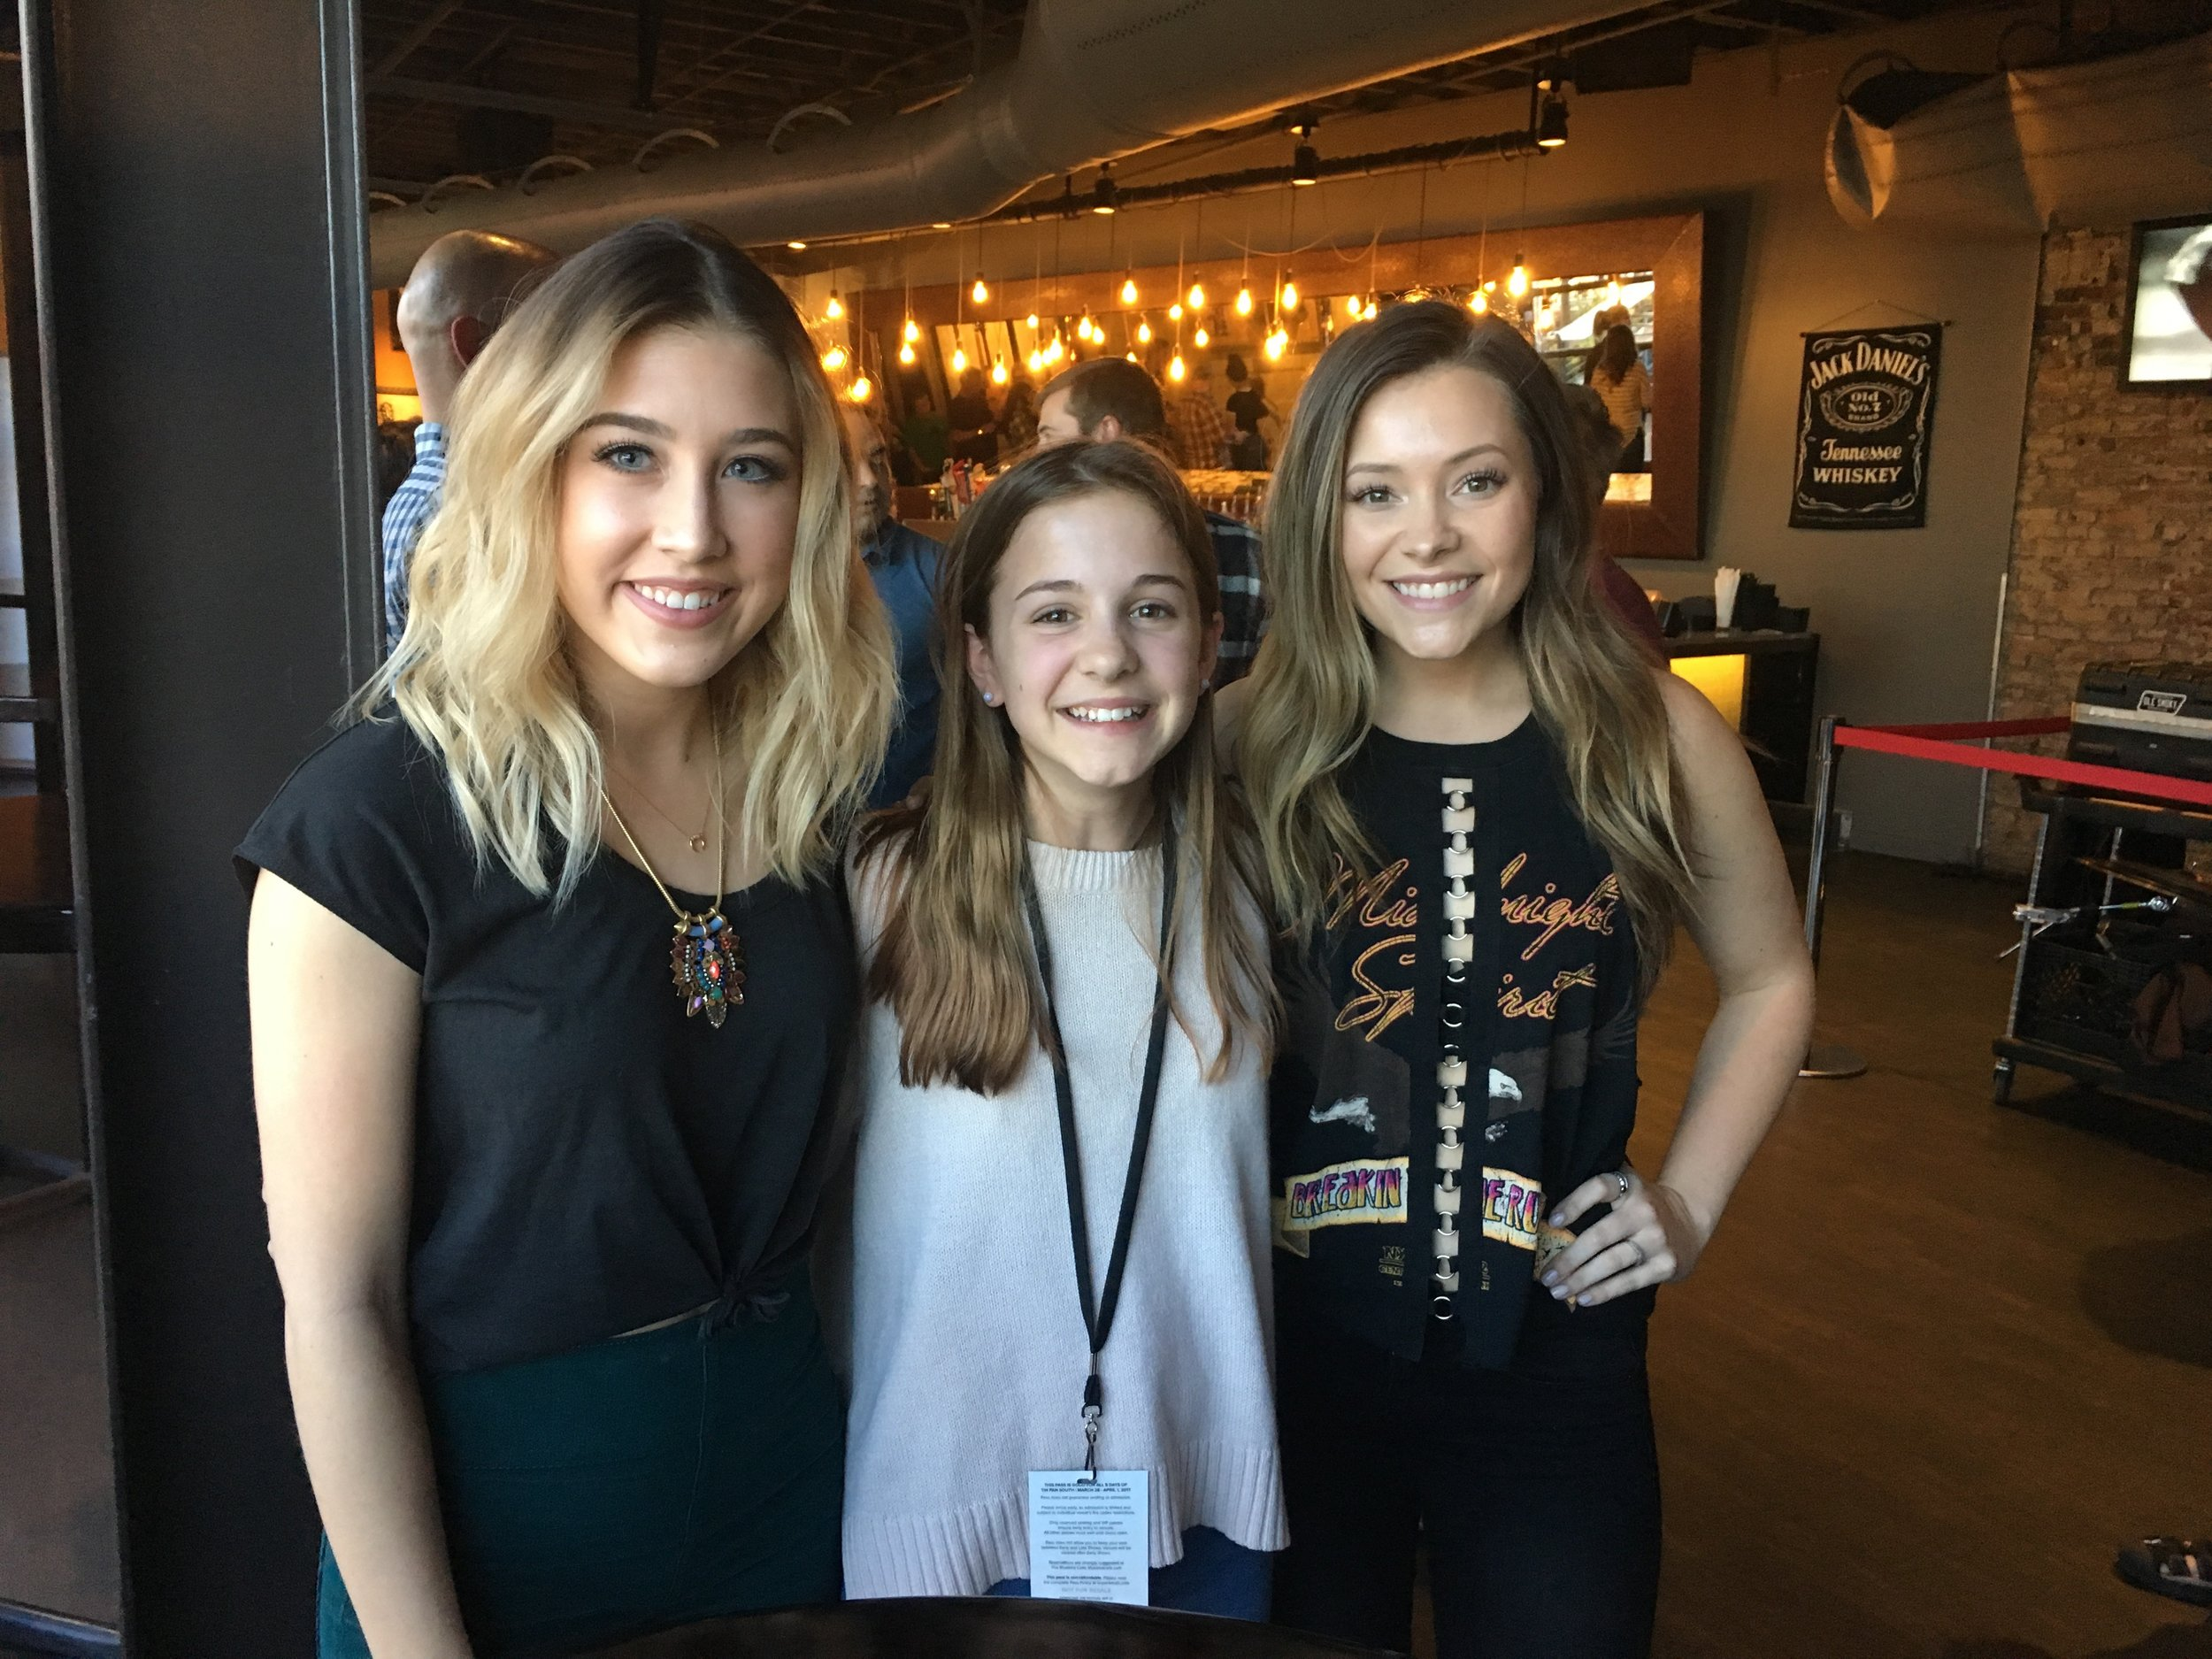 YES it is Maddie and Tae!